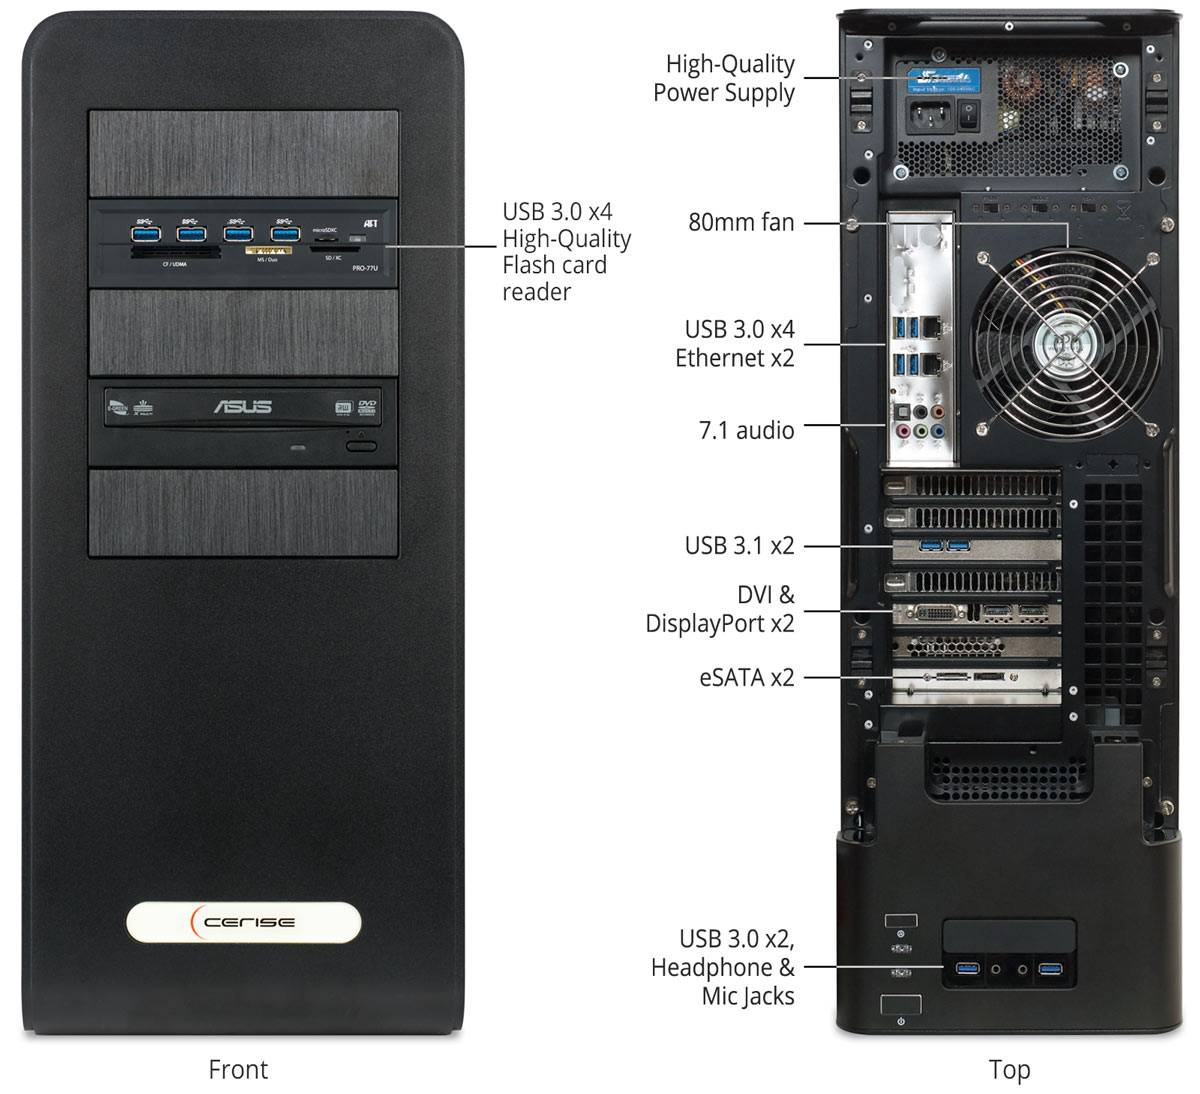 Diagram of ports on the front and top of the Cerise Workstation